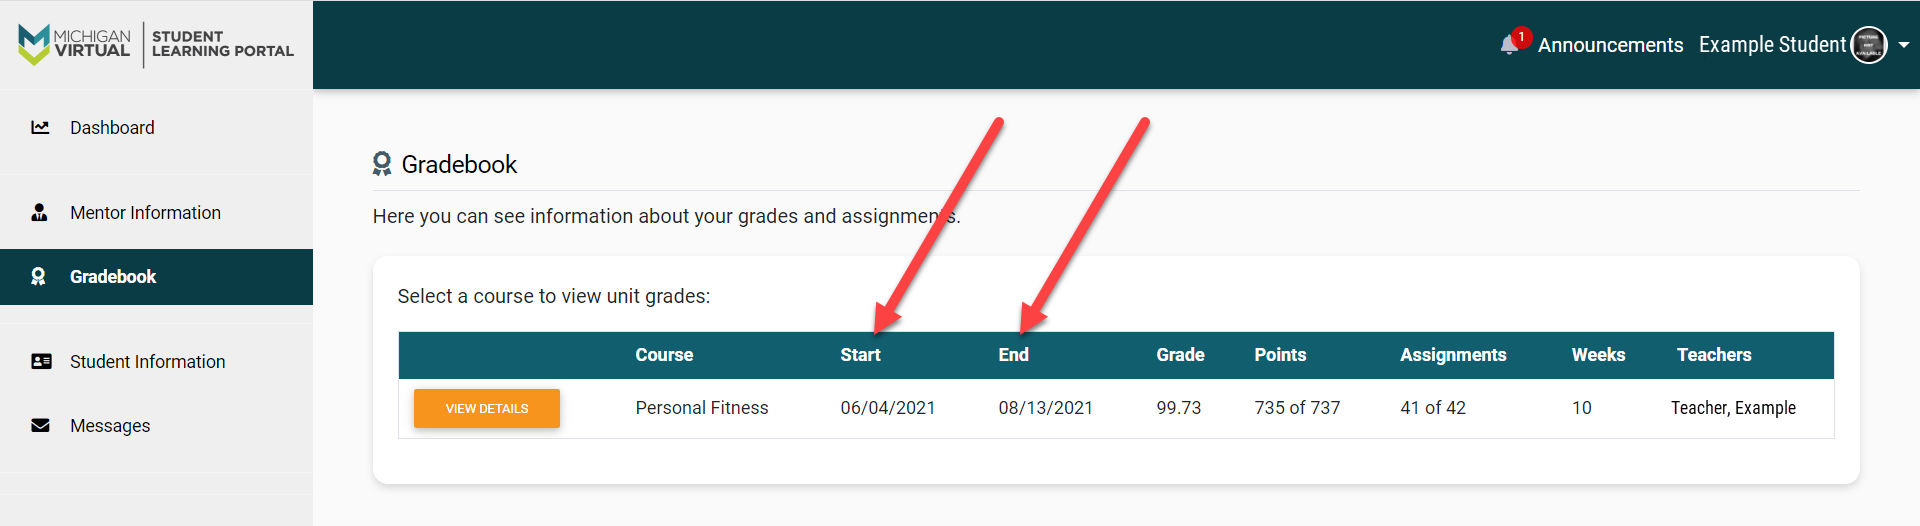 The Gradebook page is shown with a list of courses. An arrow points to the Start and End columns in a table containing Student course(s).